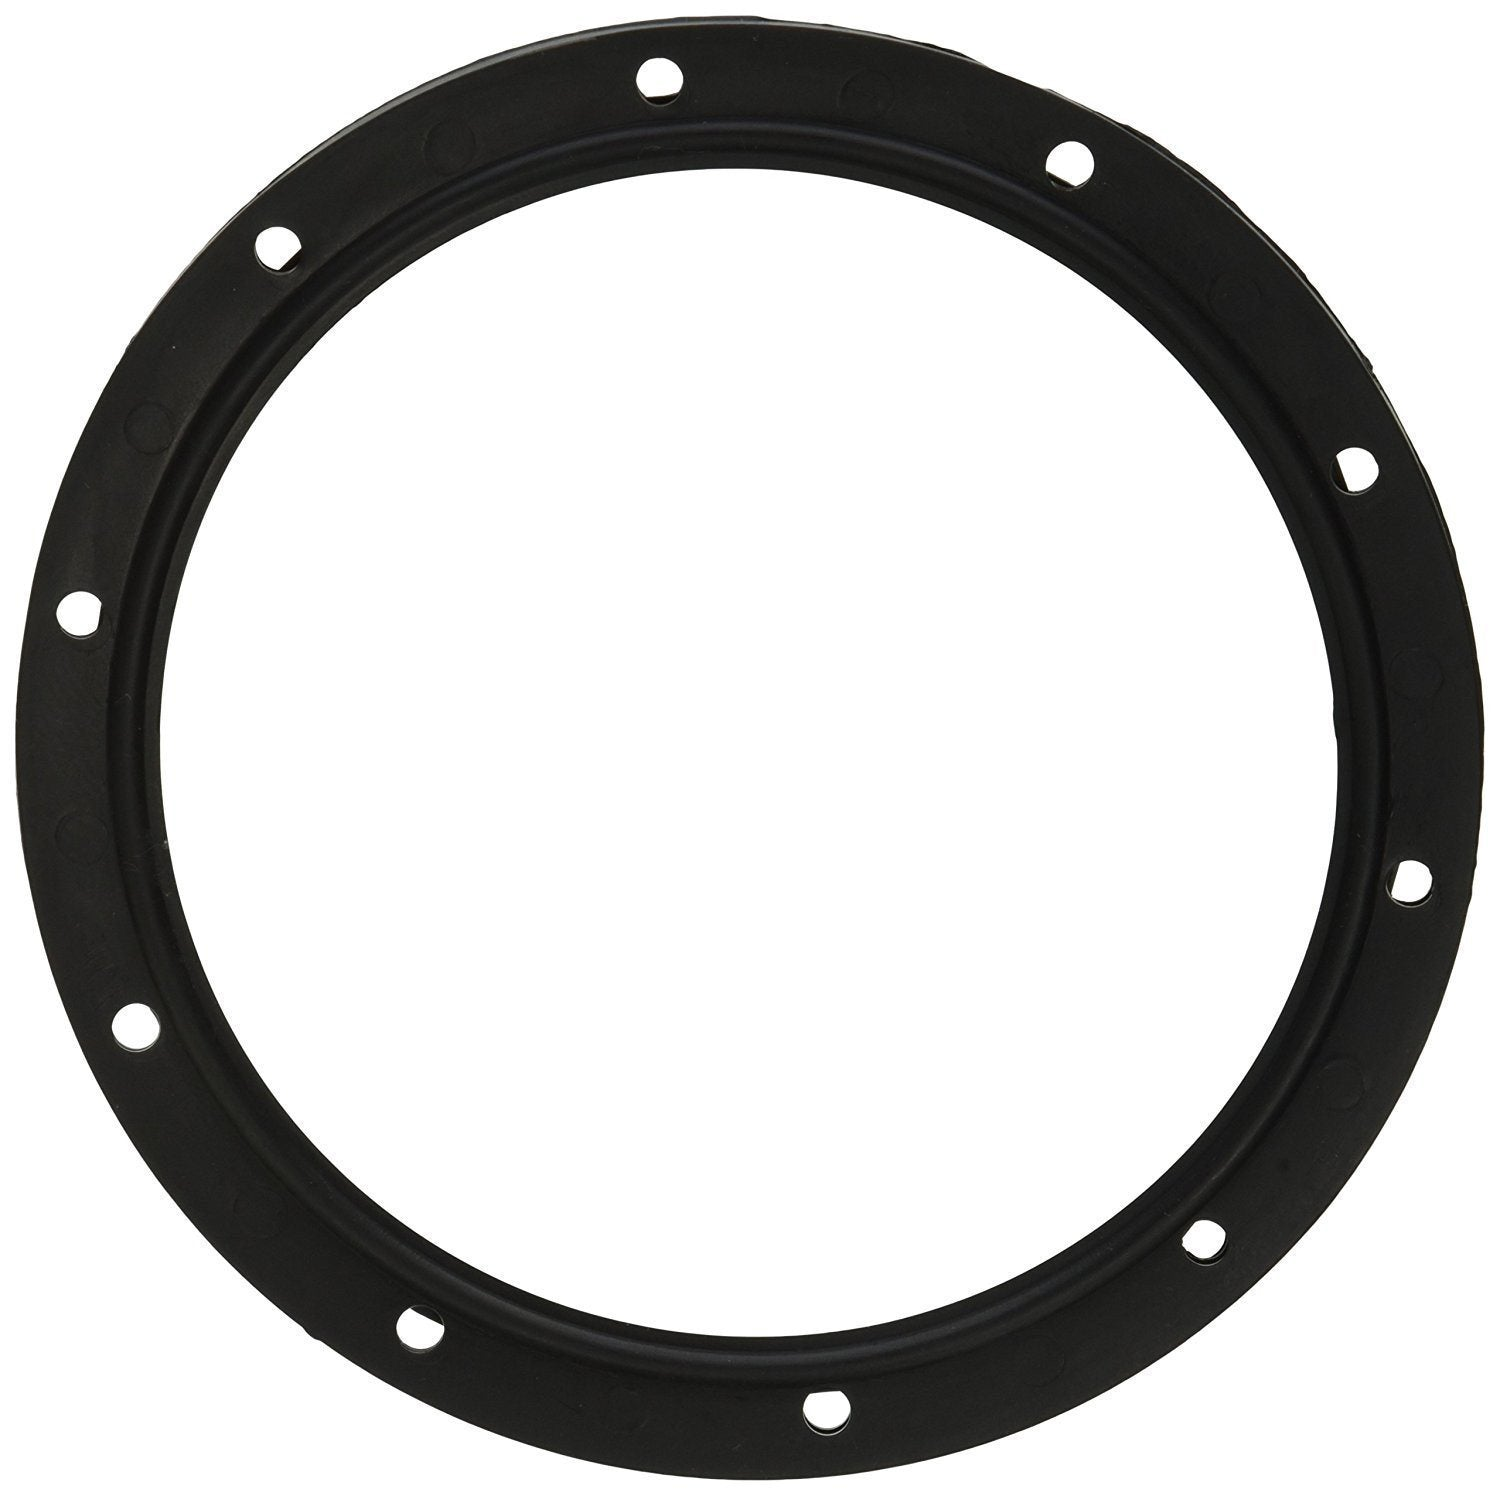 Sta-Rite Lens Gasket 05057-0118 Swimquip 10 hole Home & Garden > Pool & Spa Sta-Rite